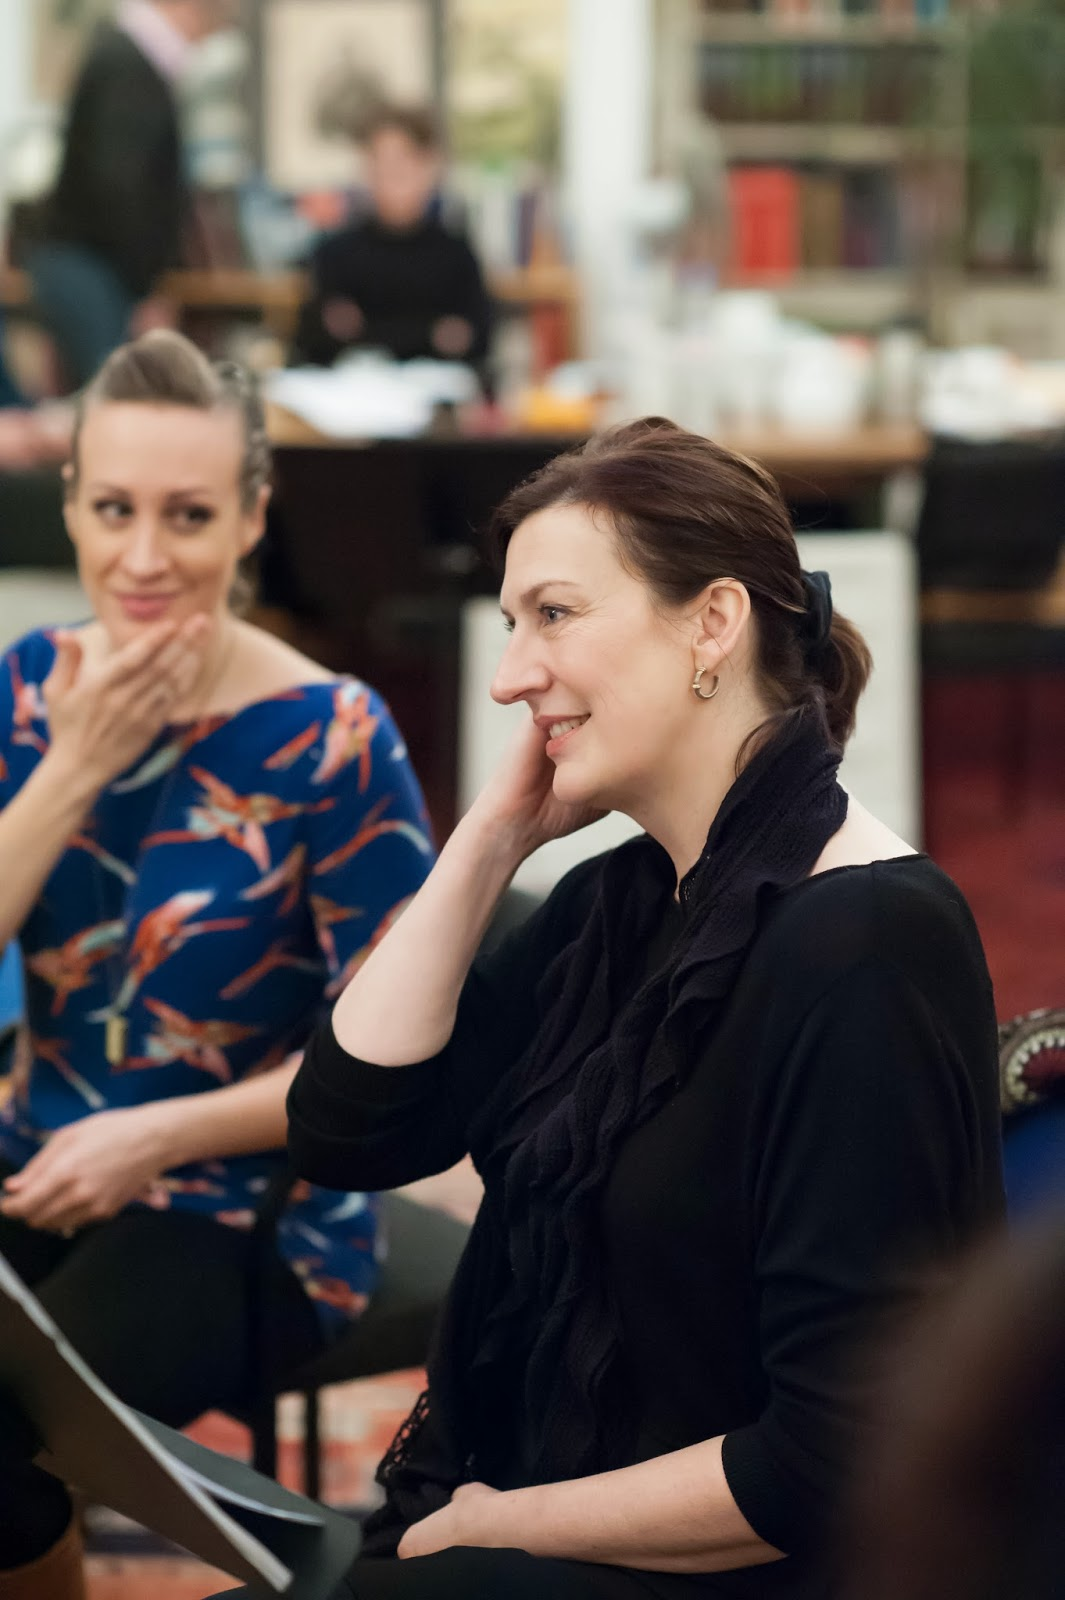 Brenda Rae & Sarah Connolly in rehearsal for Offenbach's Fantasio at Opera Rara's studio (Photo Russell Duncan)